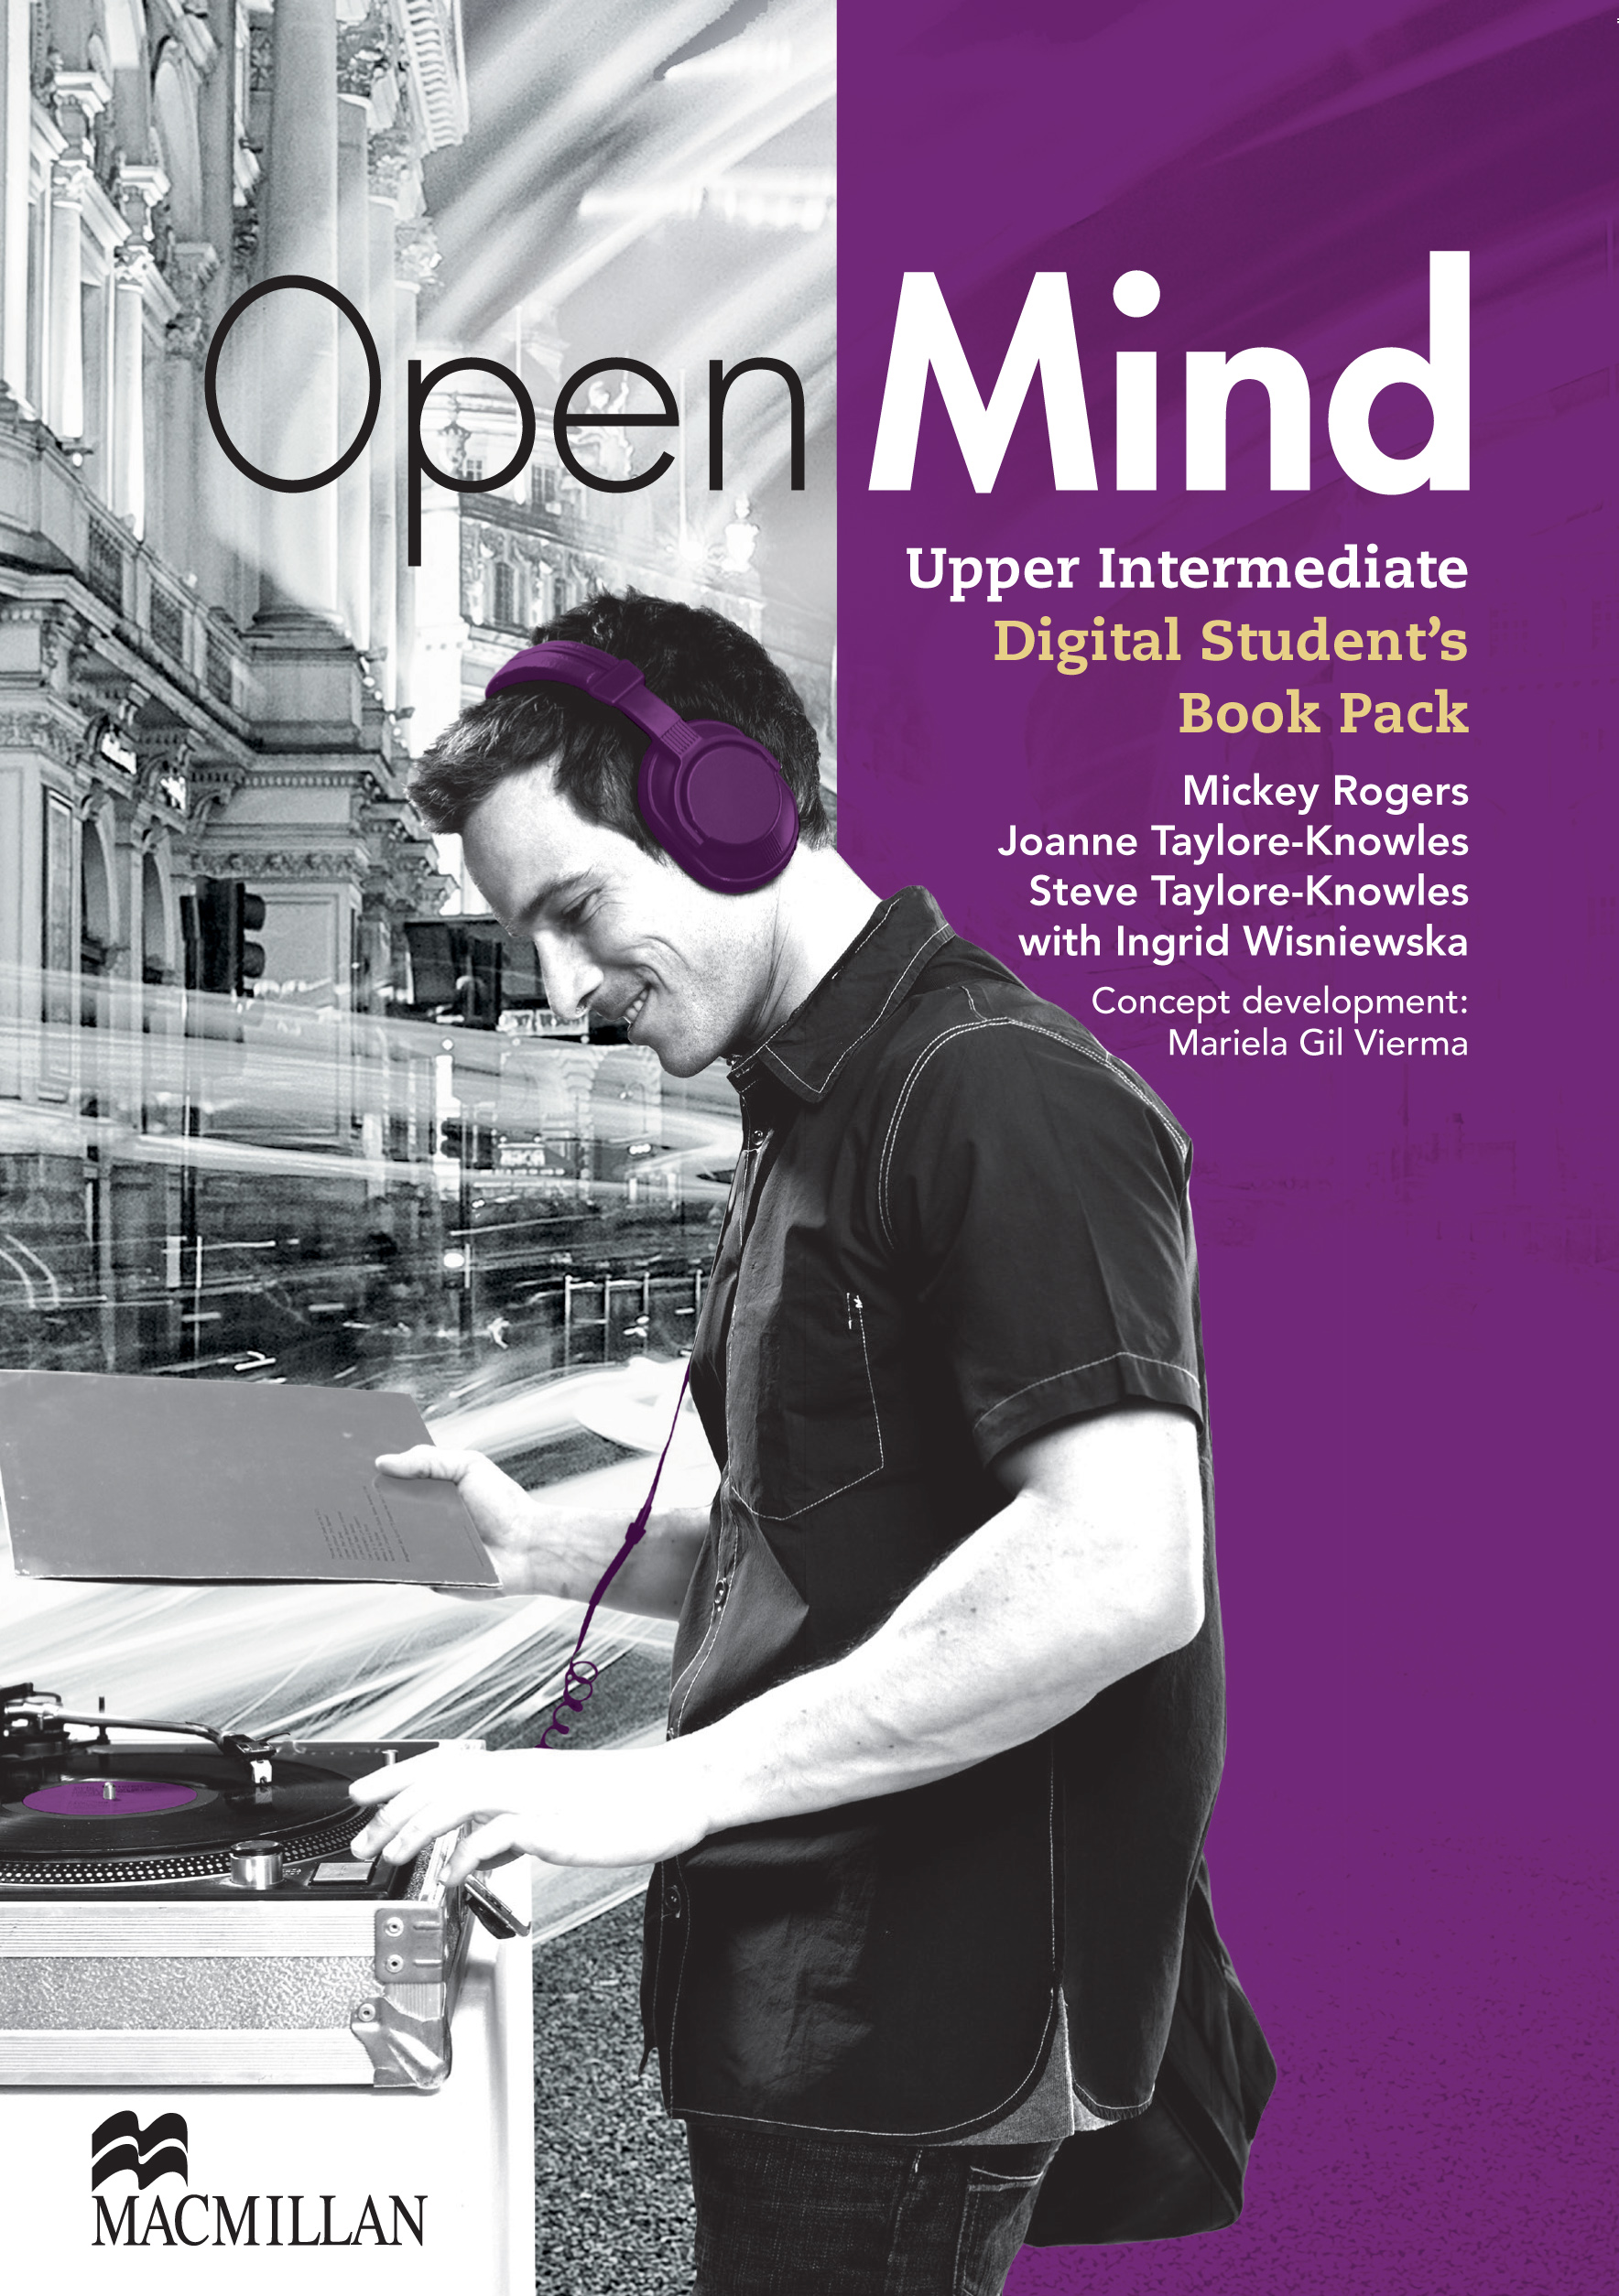 Open Mind Upper Intermediate Digital Student